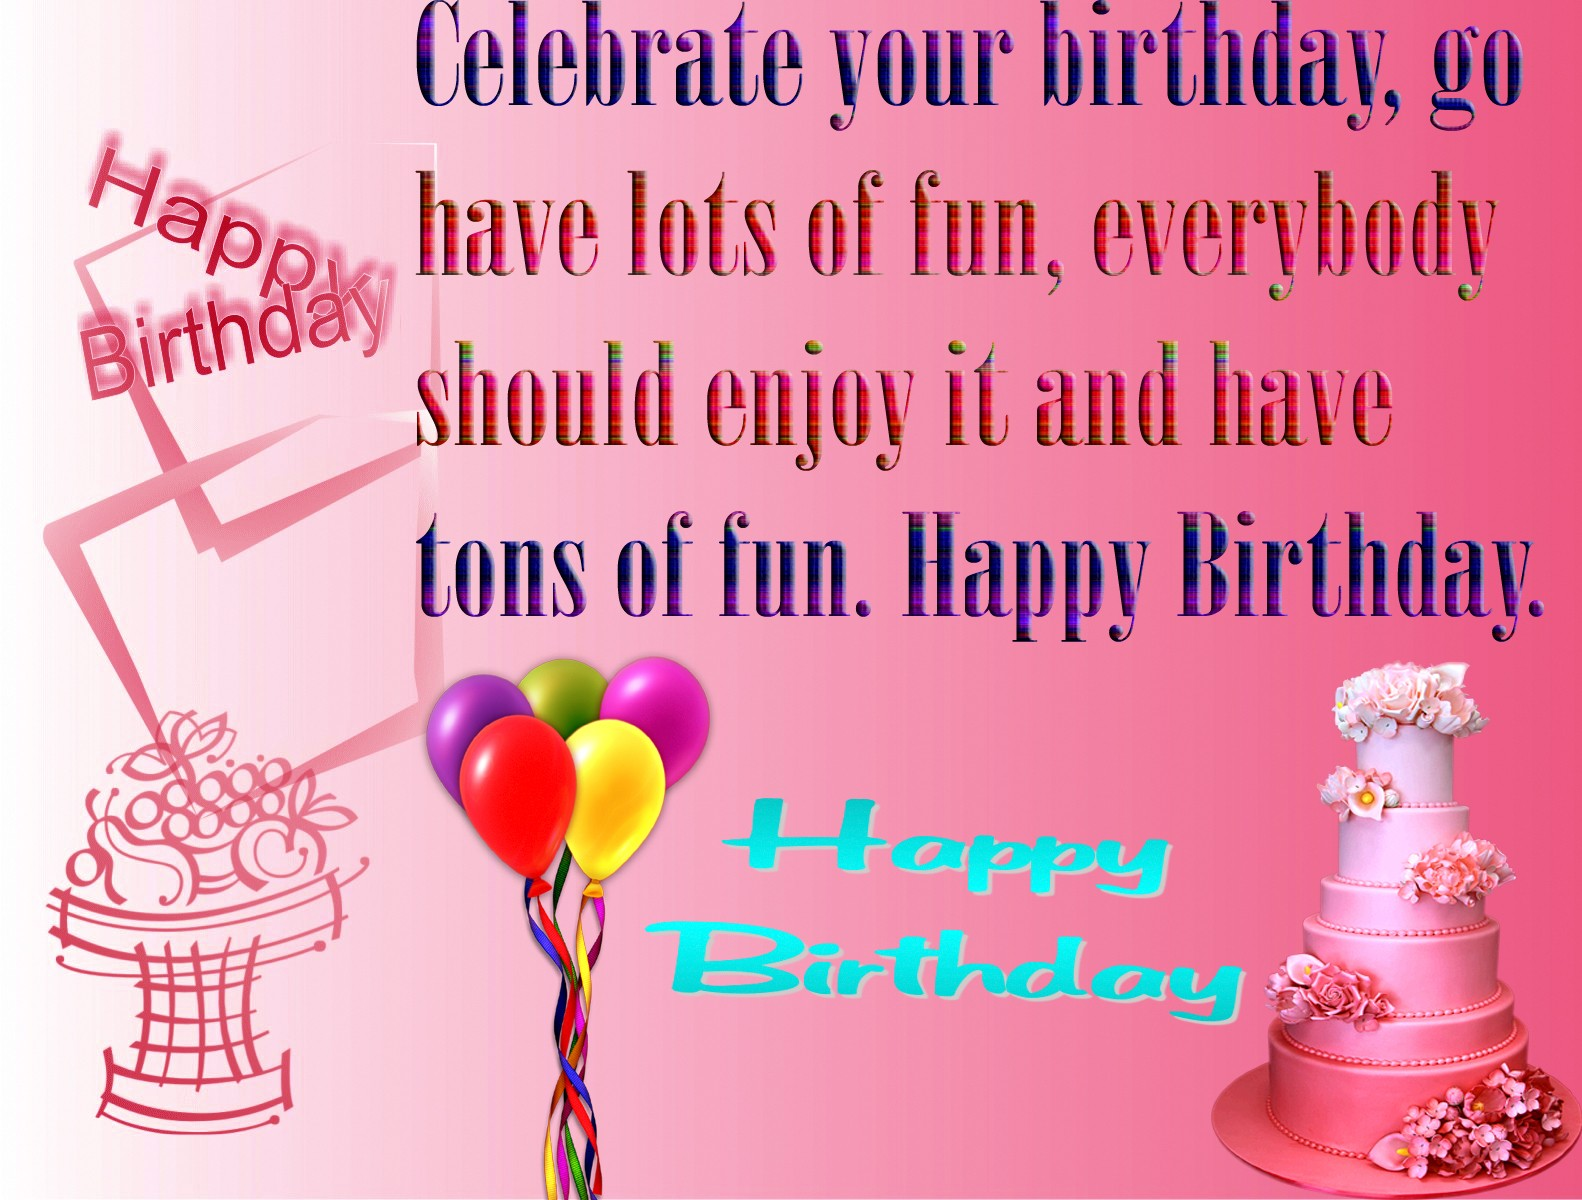 Download Free Download Birthday Wishes Wallpapers Gallery